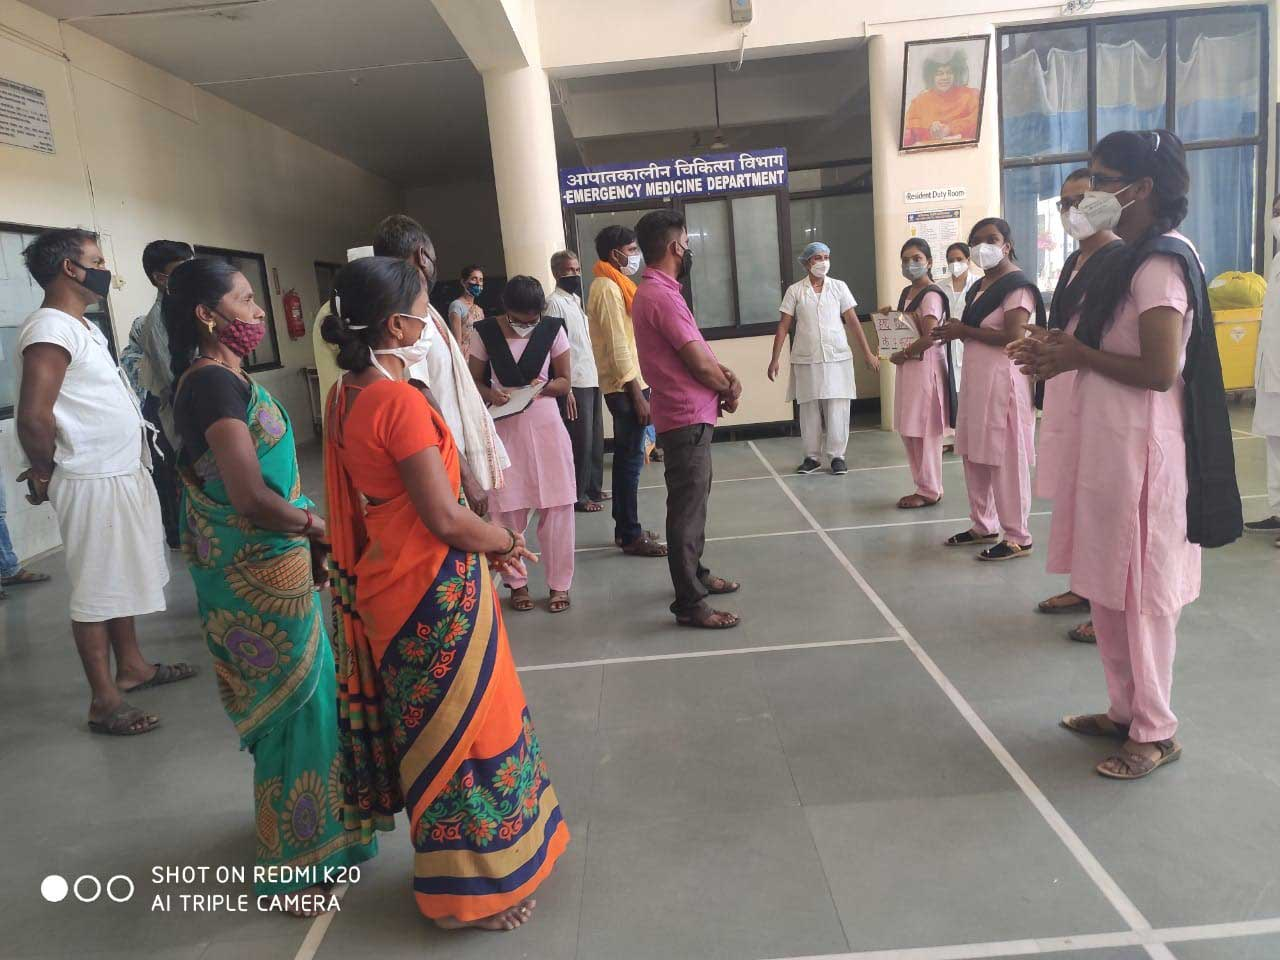 03/04/2021 - Hand Hygiene demonstration By Nursing College Students